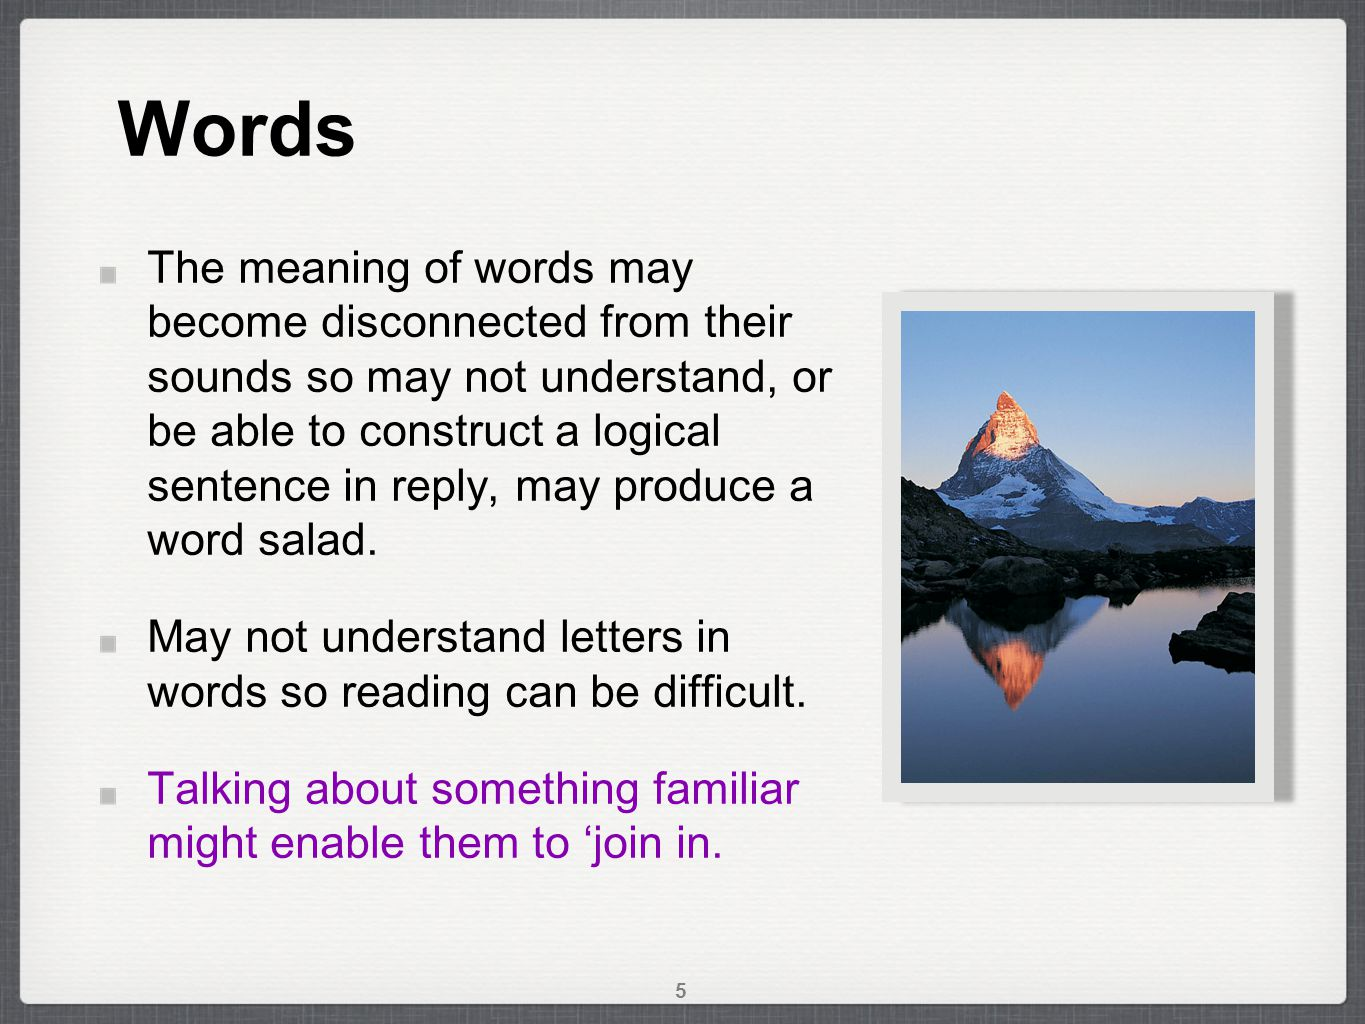 Words The meaning of words may become disconnected from their sounds so may not understand, or be able to construct a logical sentence in reply, may produce a word salad.